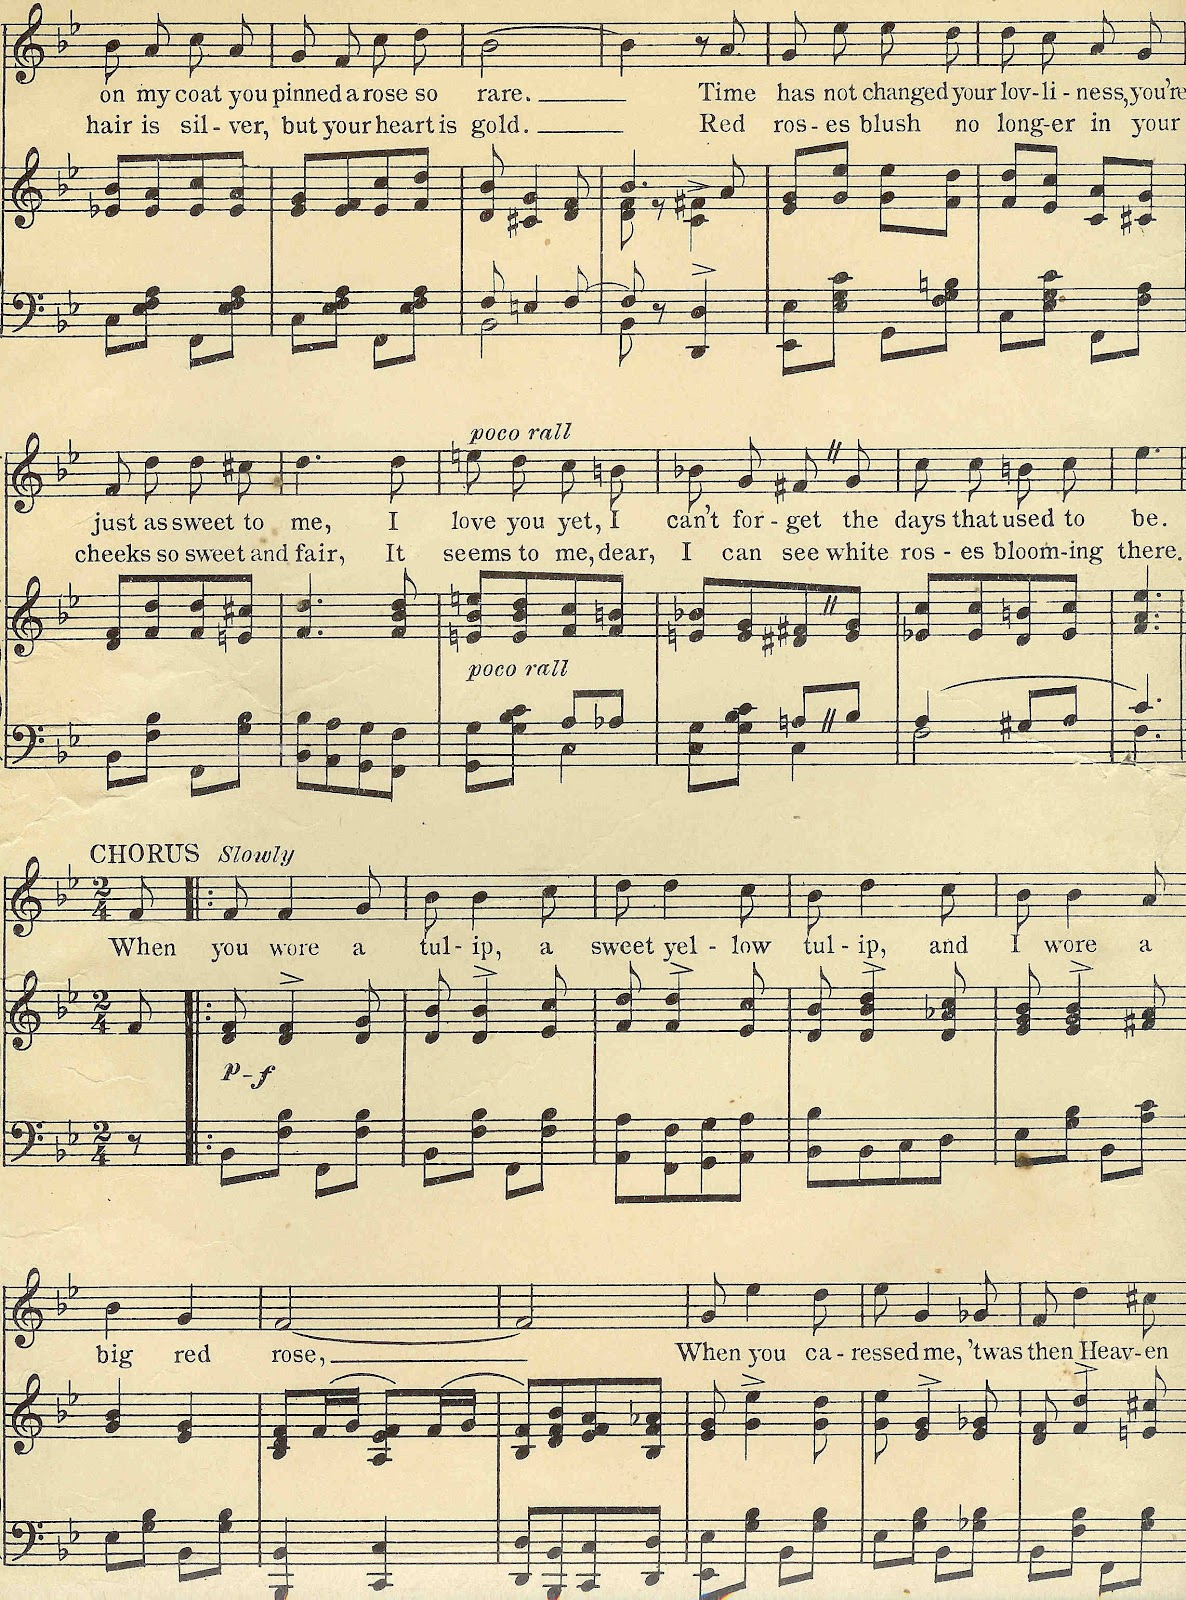 Sheet Music clipart decorative Antique Background of Sheet Images: